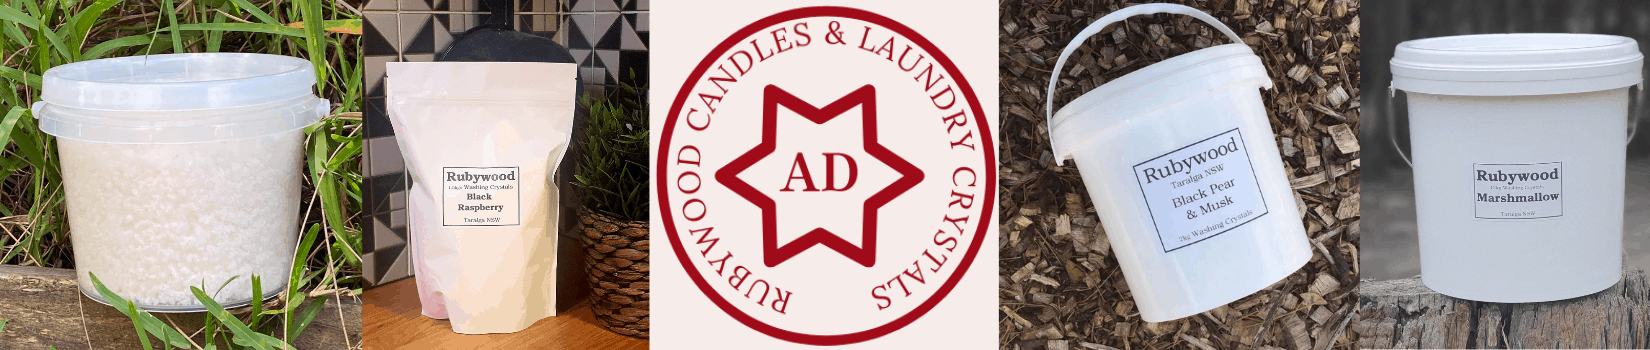 Rubywood Candles & Laundry Crystals